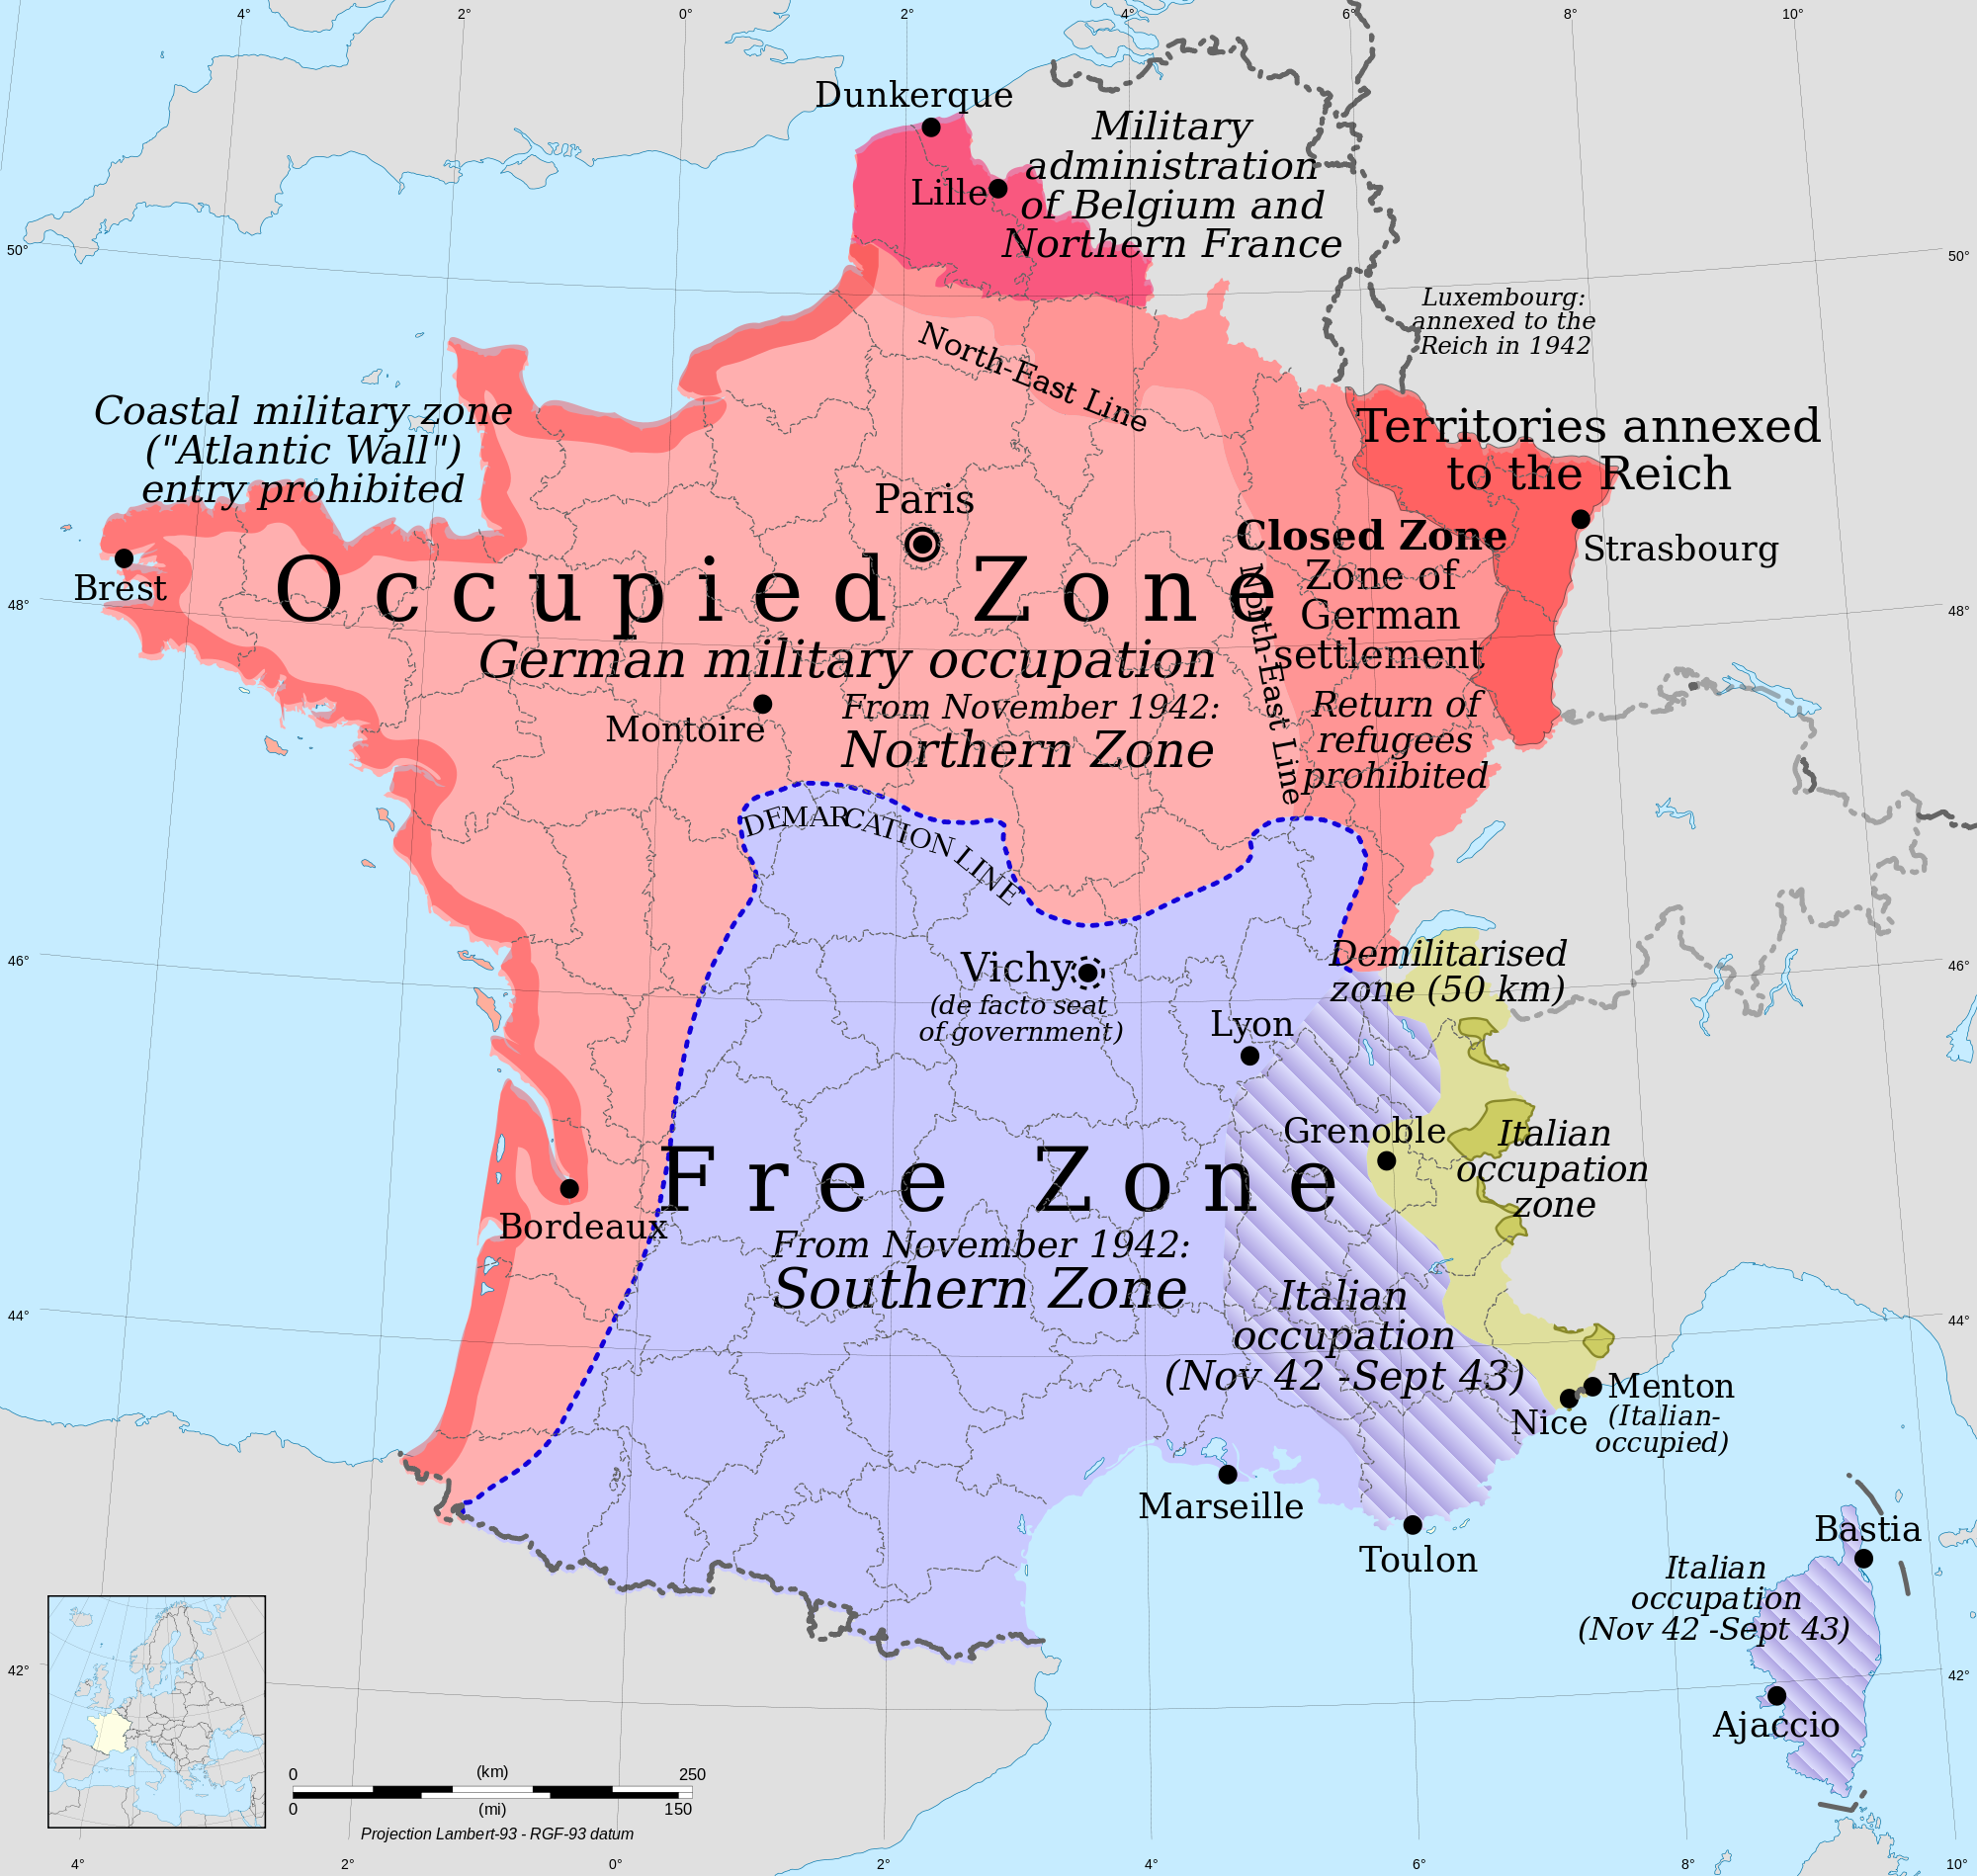 Italian occupation of france wikipedia the free encyclopedia 1942 occupation zones of france during the second world war gumiabroncs Choice Image